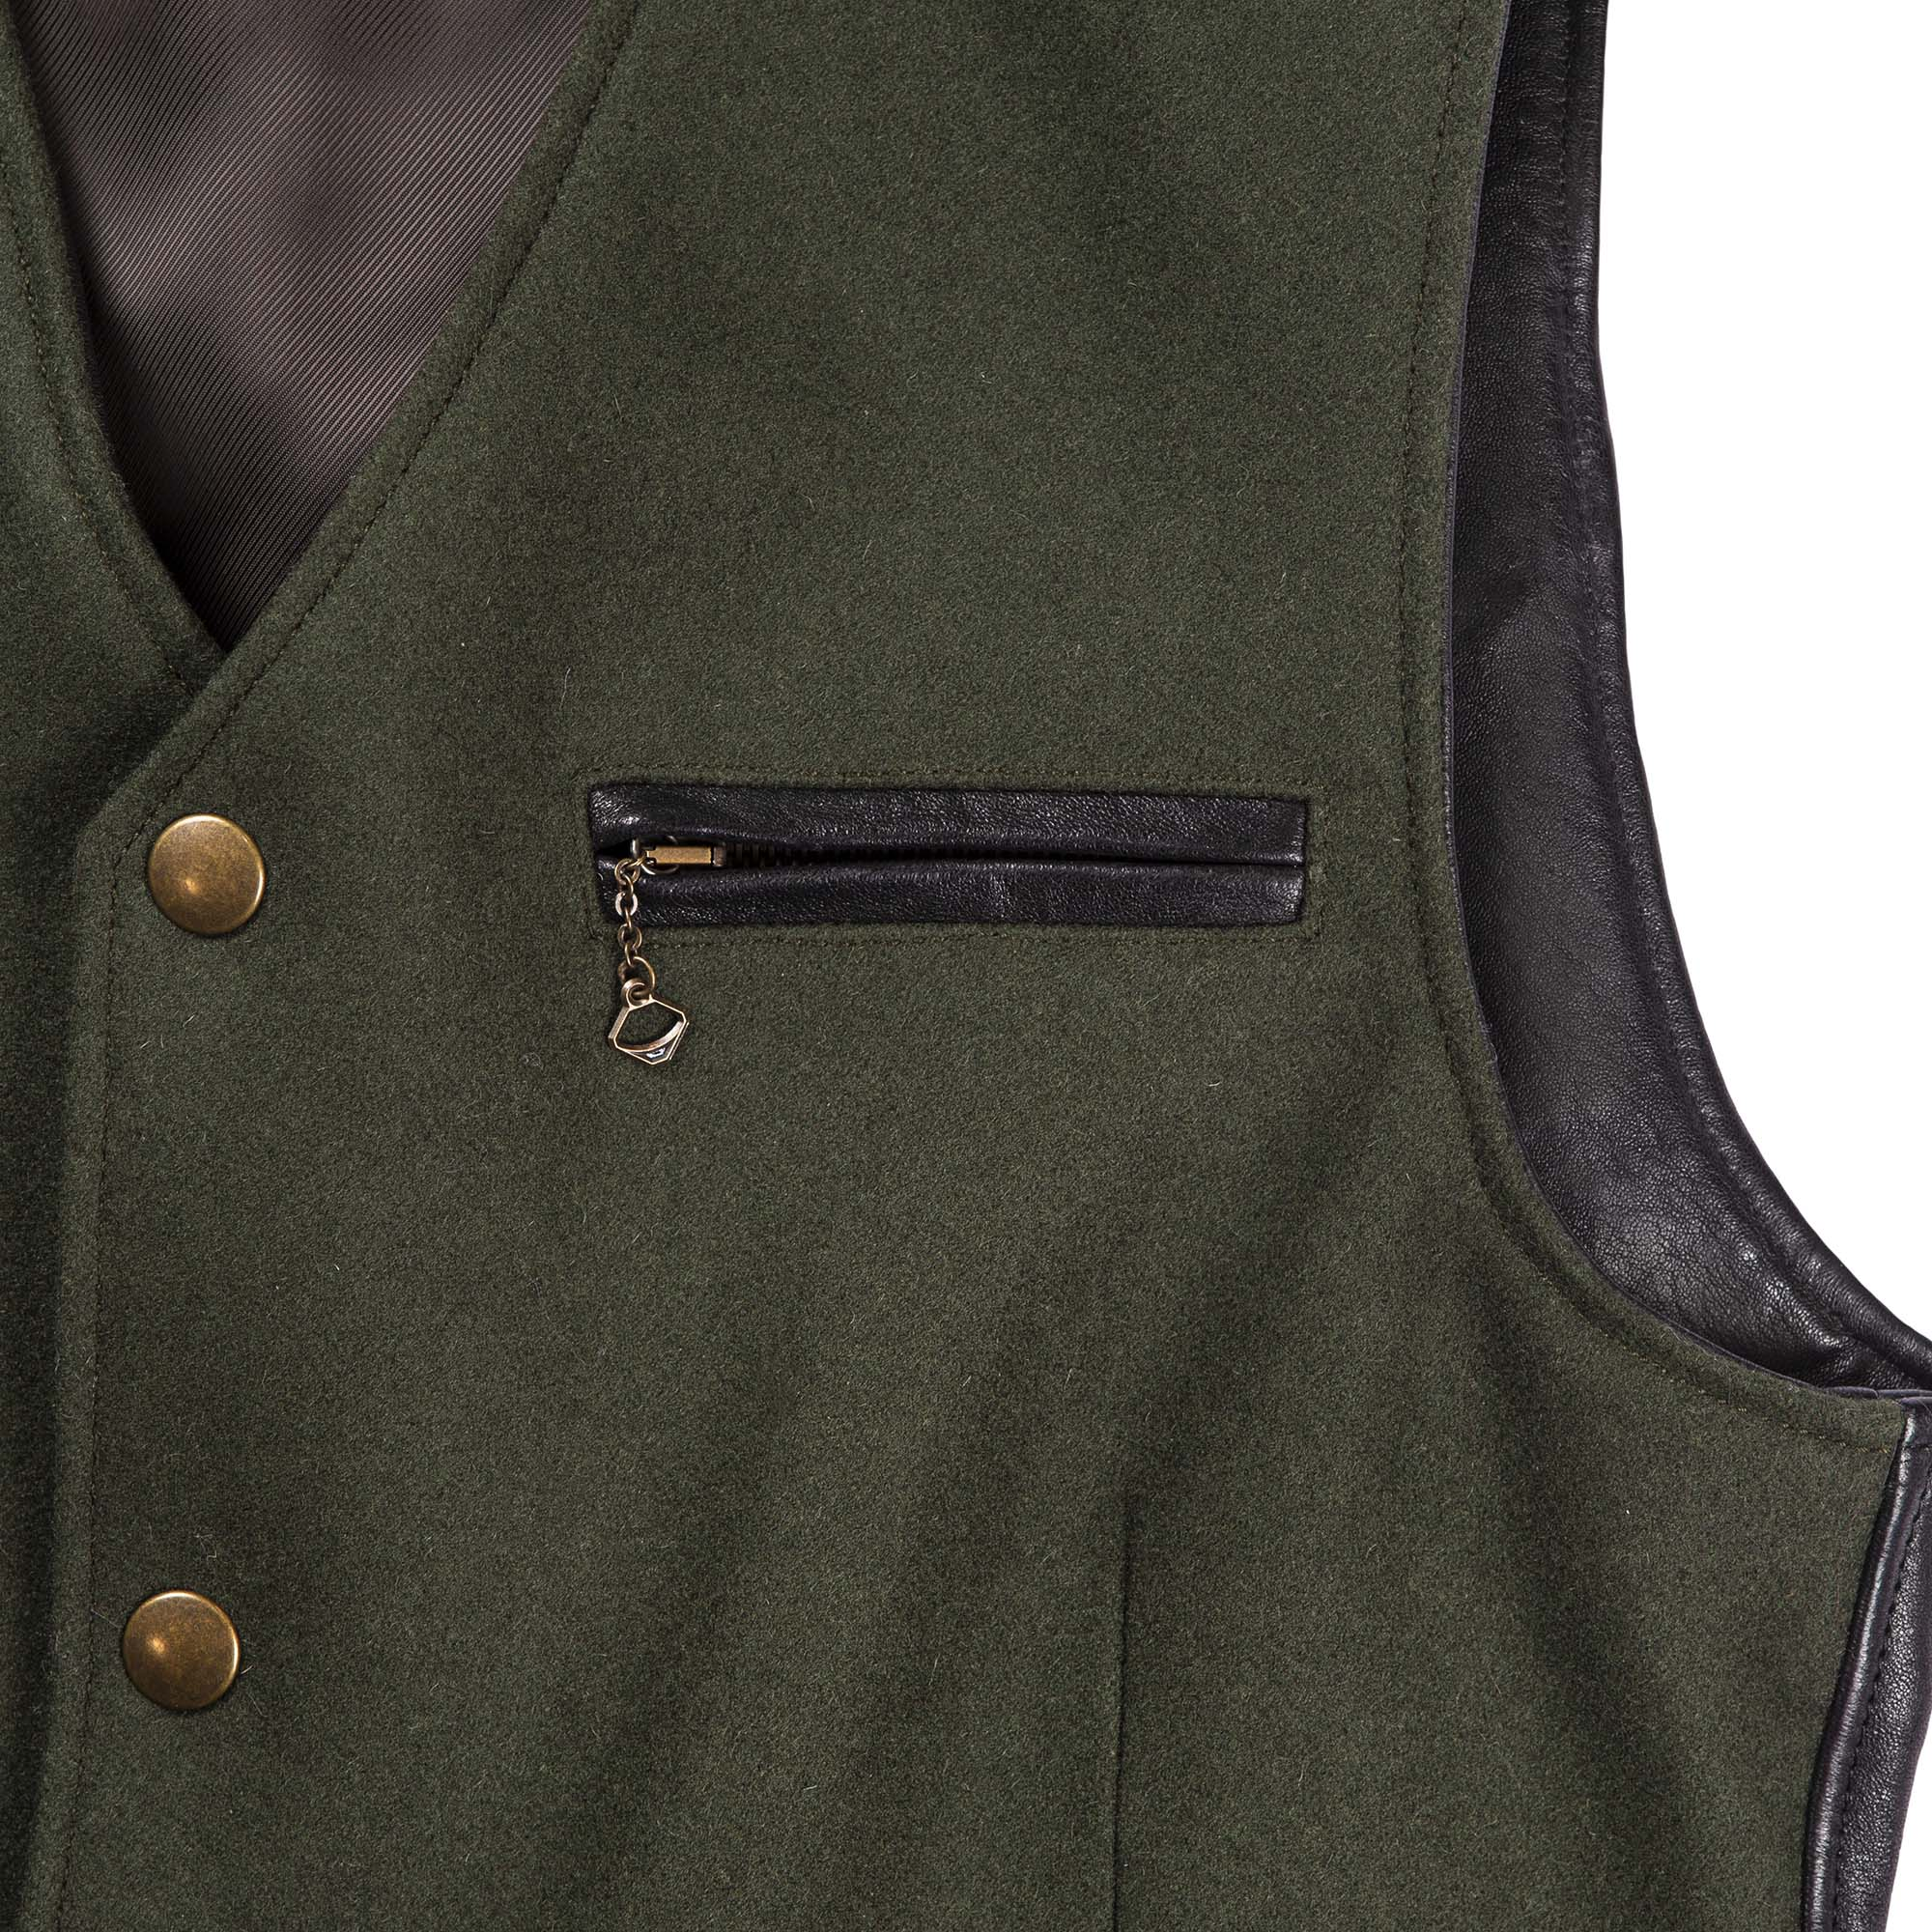 shangri-la-heritage-mandriano-forest-green-wool-vest-still-life-chest-pocket